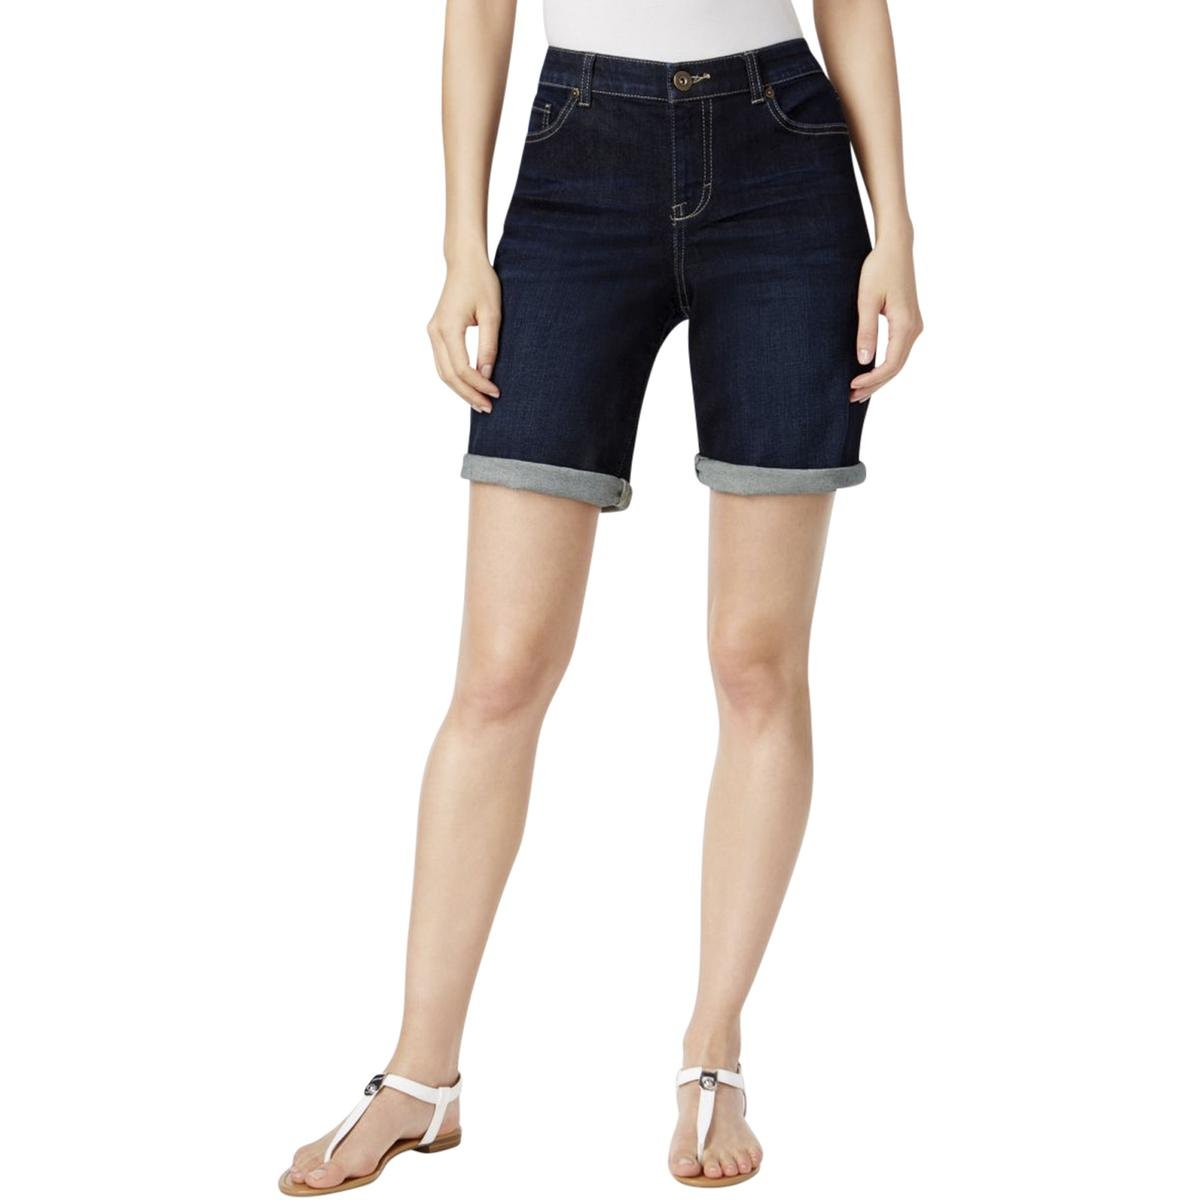 Style & Co. Womens Caneel Wash Mid-Rise Denim Shorts Blue 4